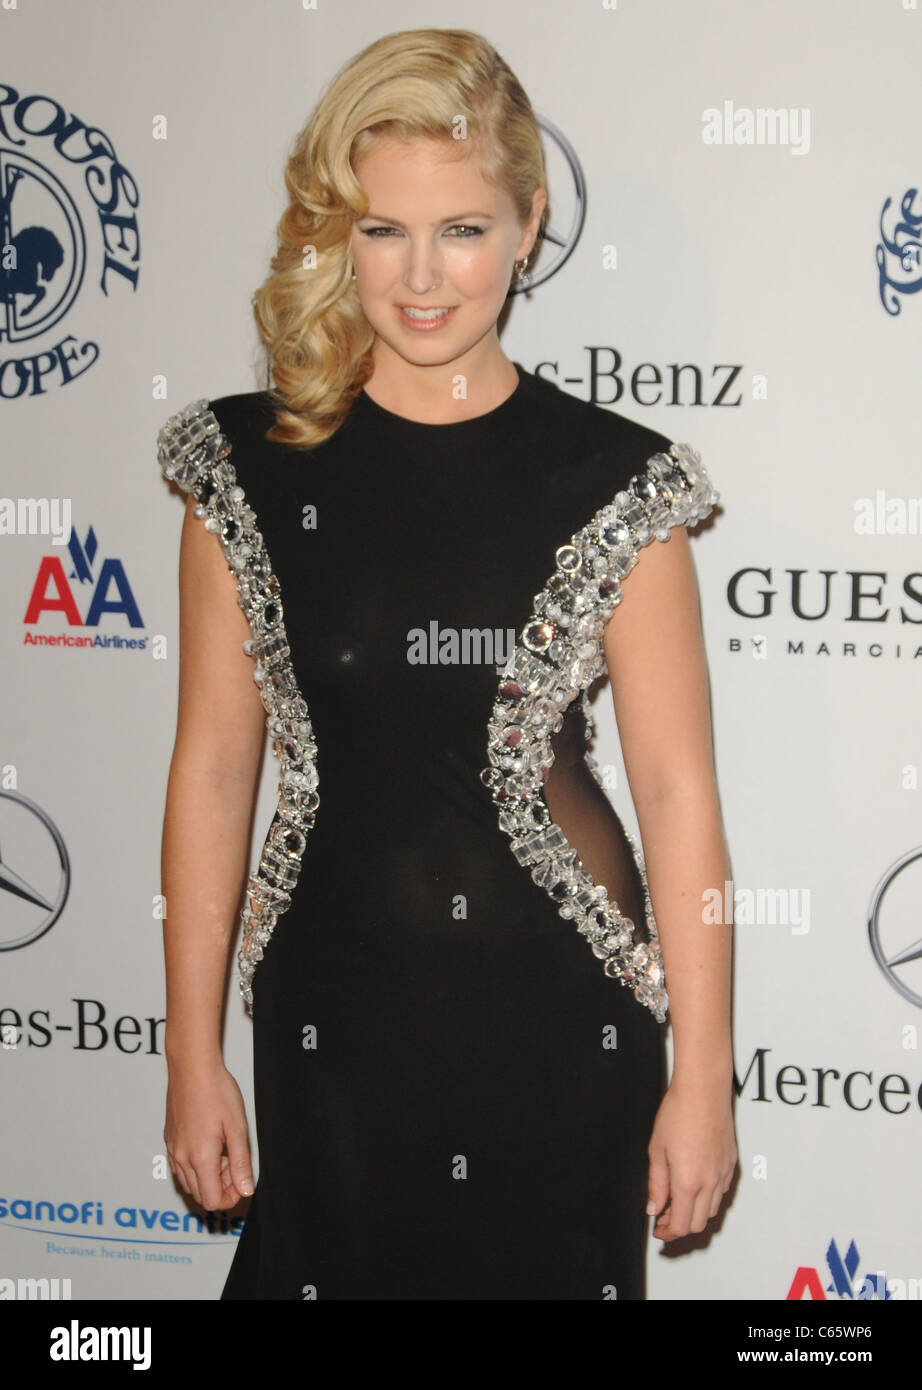 Watch Adunni Ade video